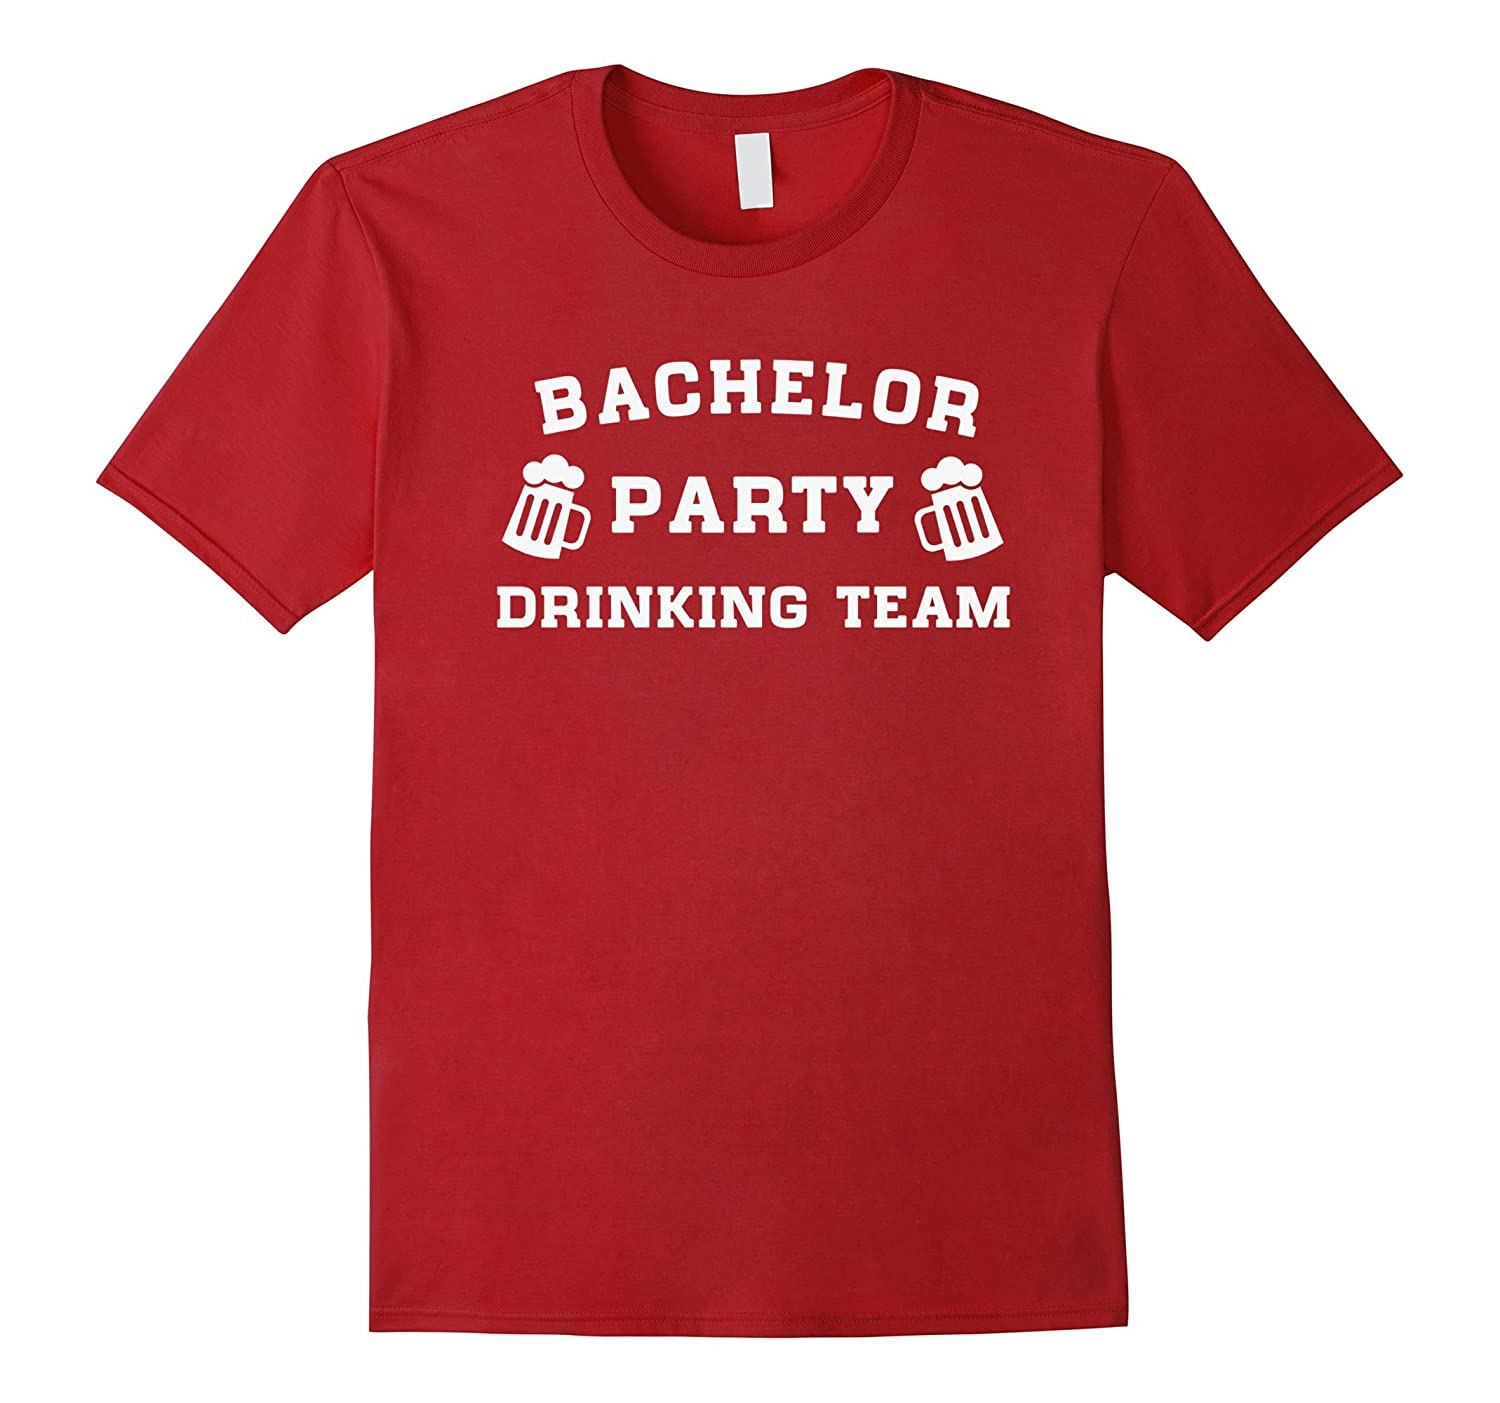 267f1816 Bachelor Party Drinking Team funny best men t-shirts-TD – Teedep